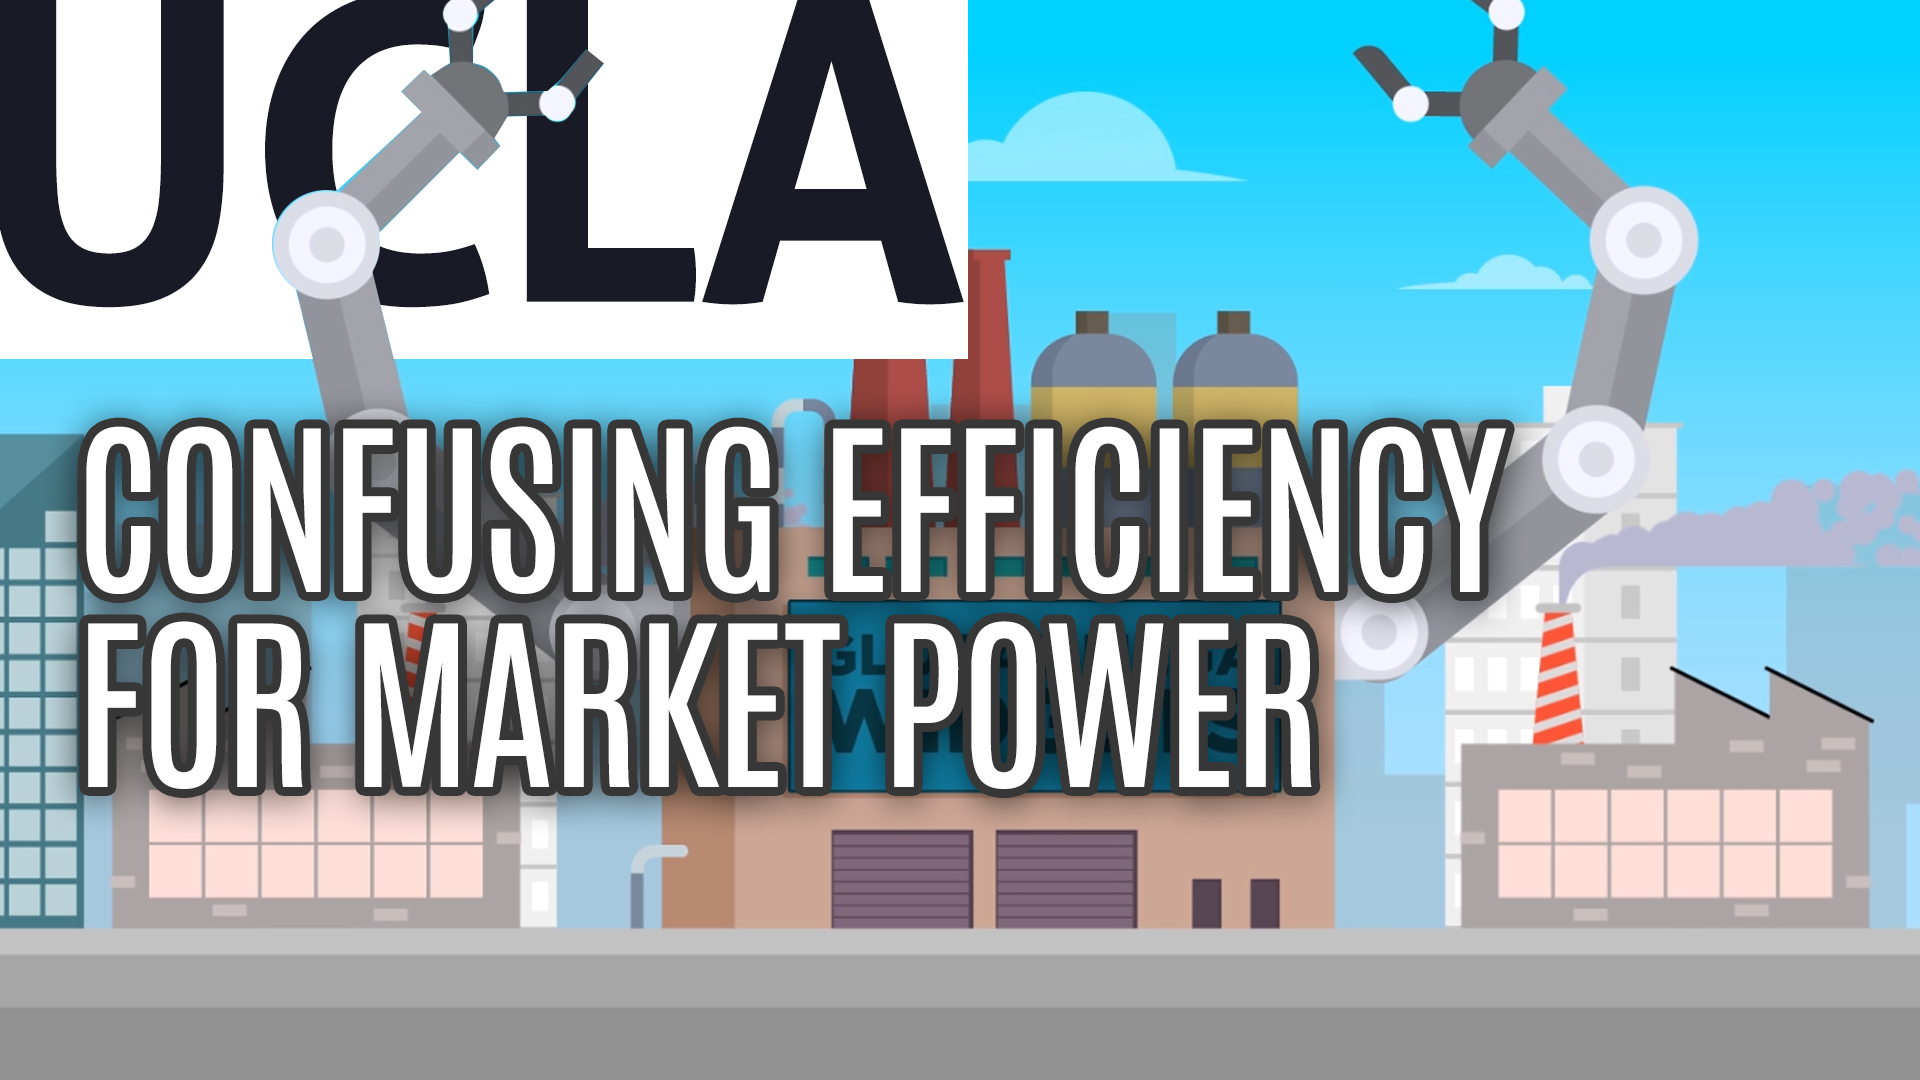 Confusing Efficiency for Market Power